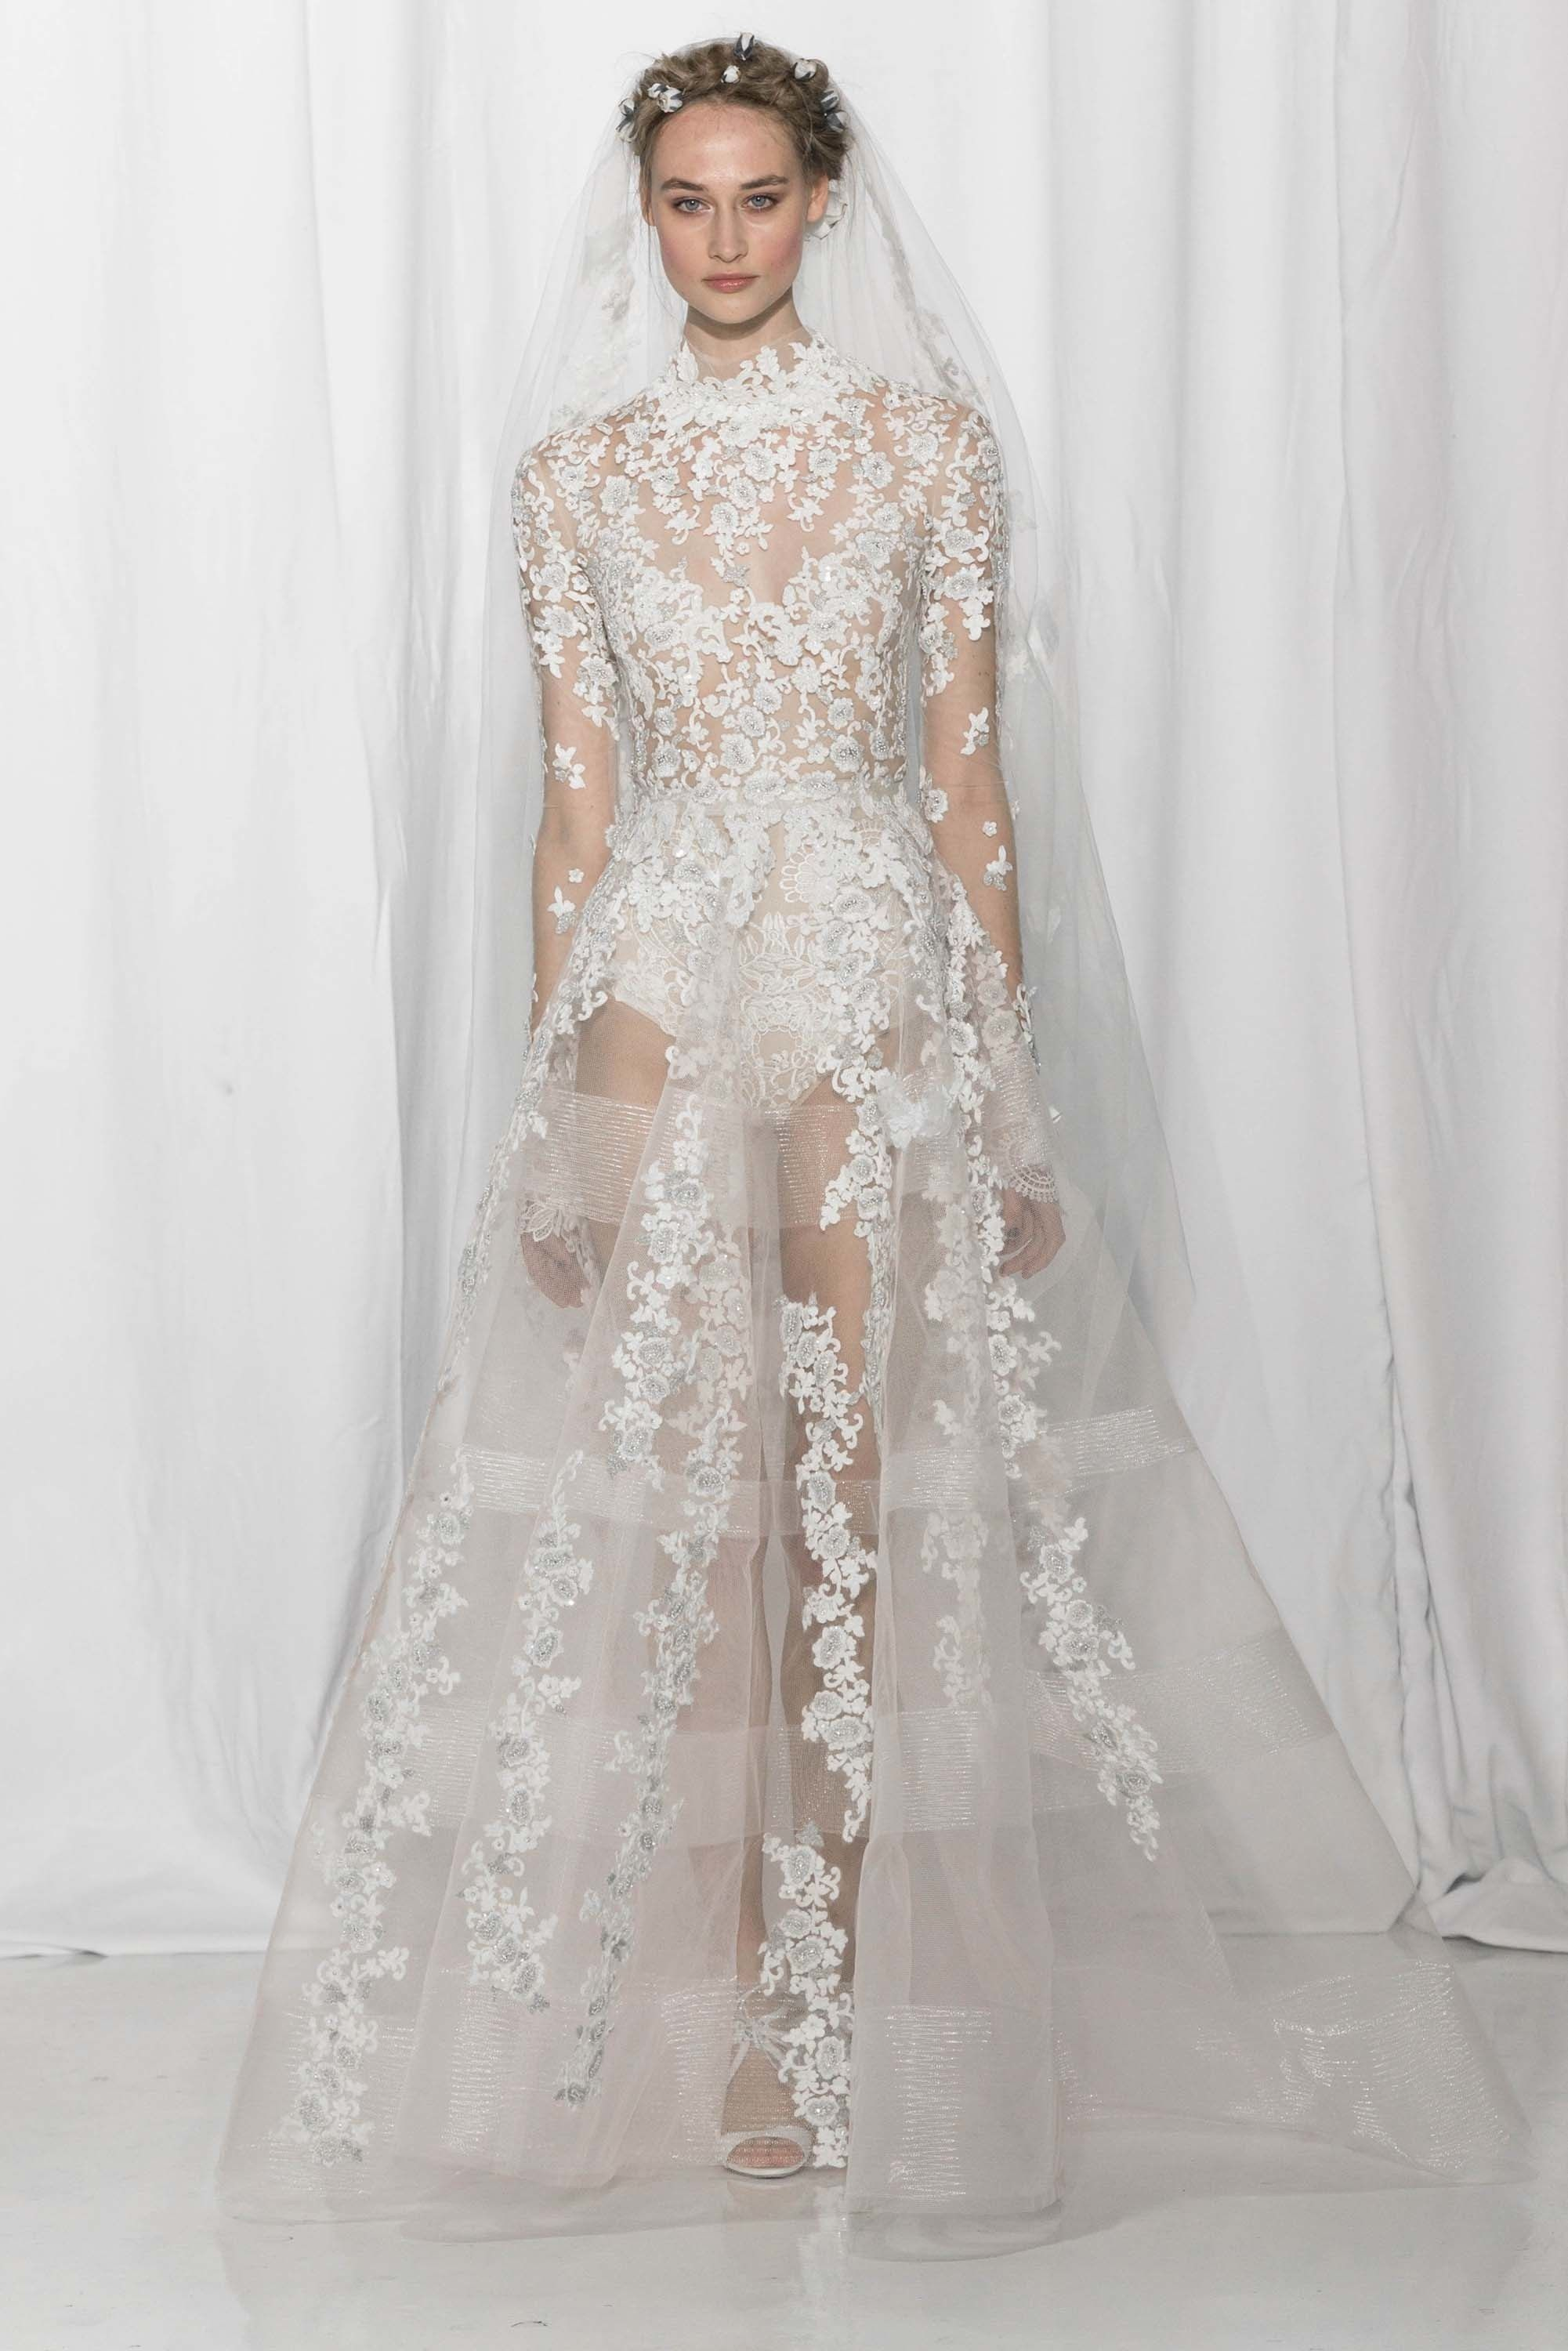 Cool  Wedding dresses Trends for a Gorgeous looking Bride